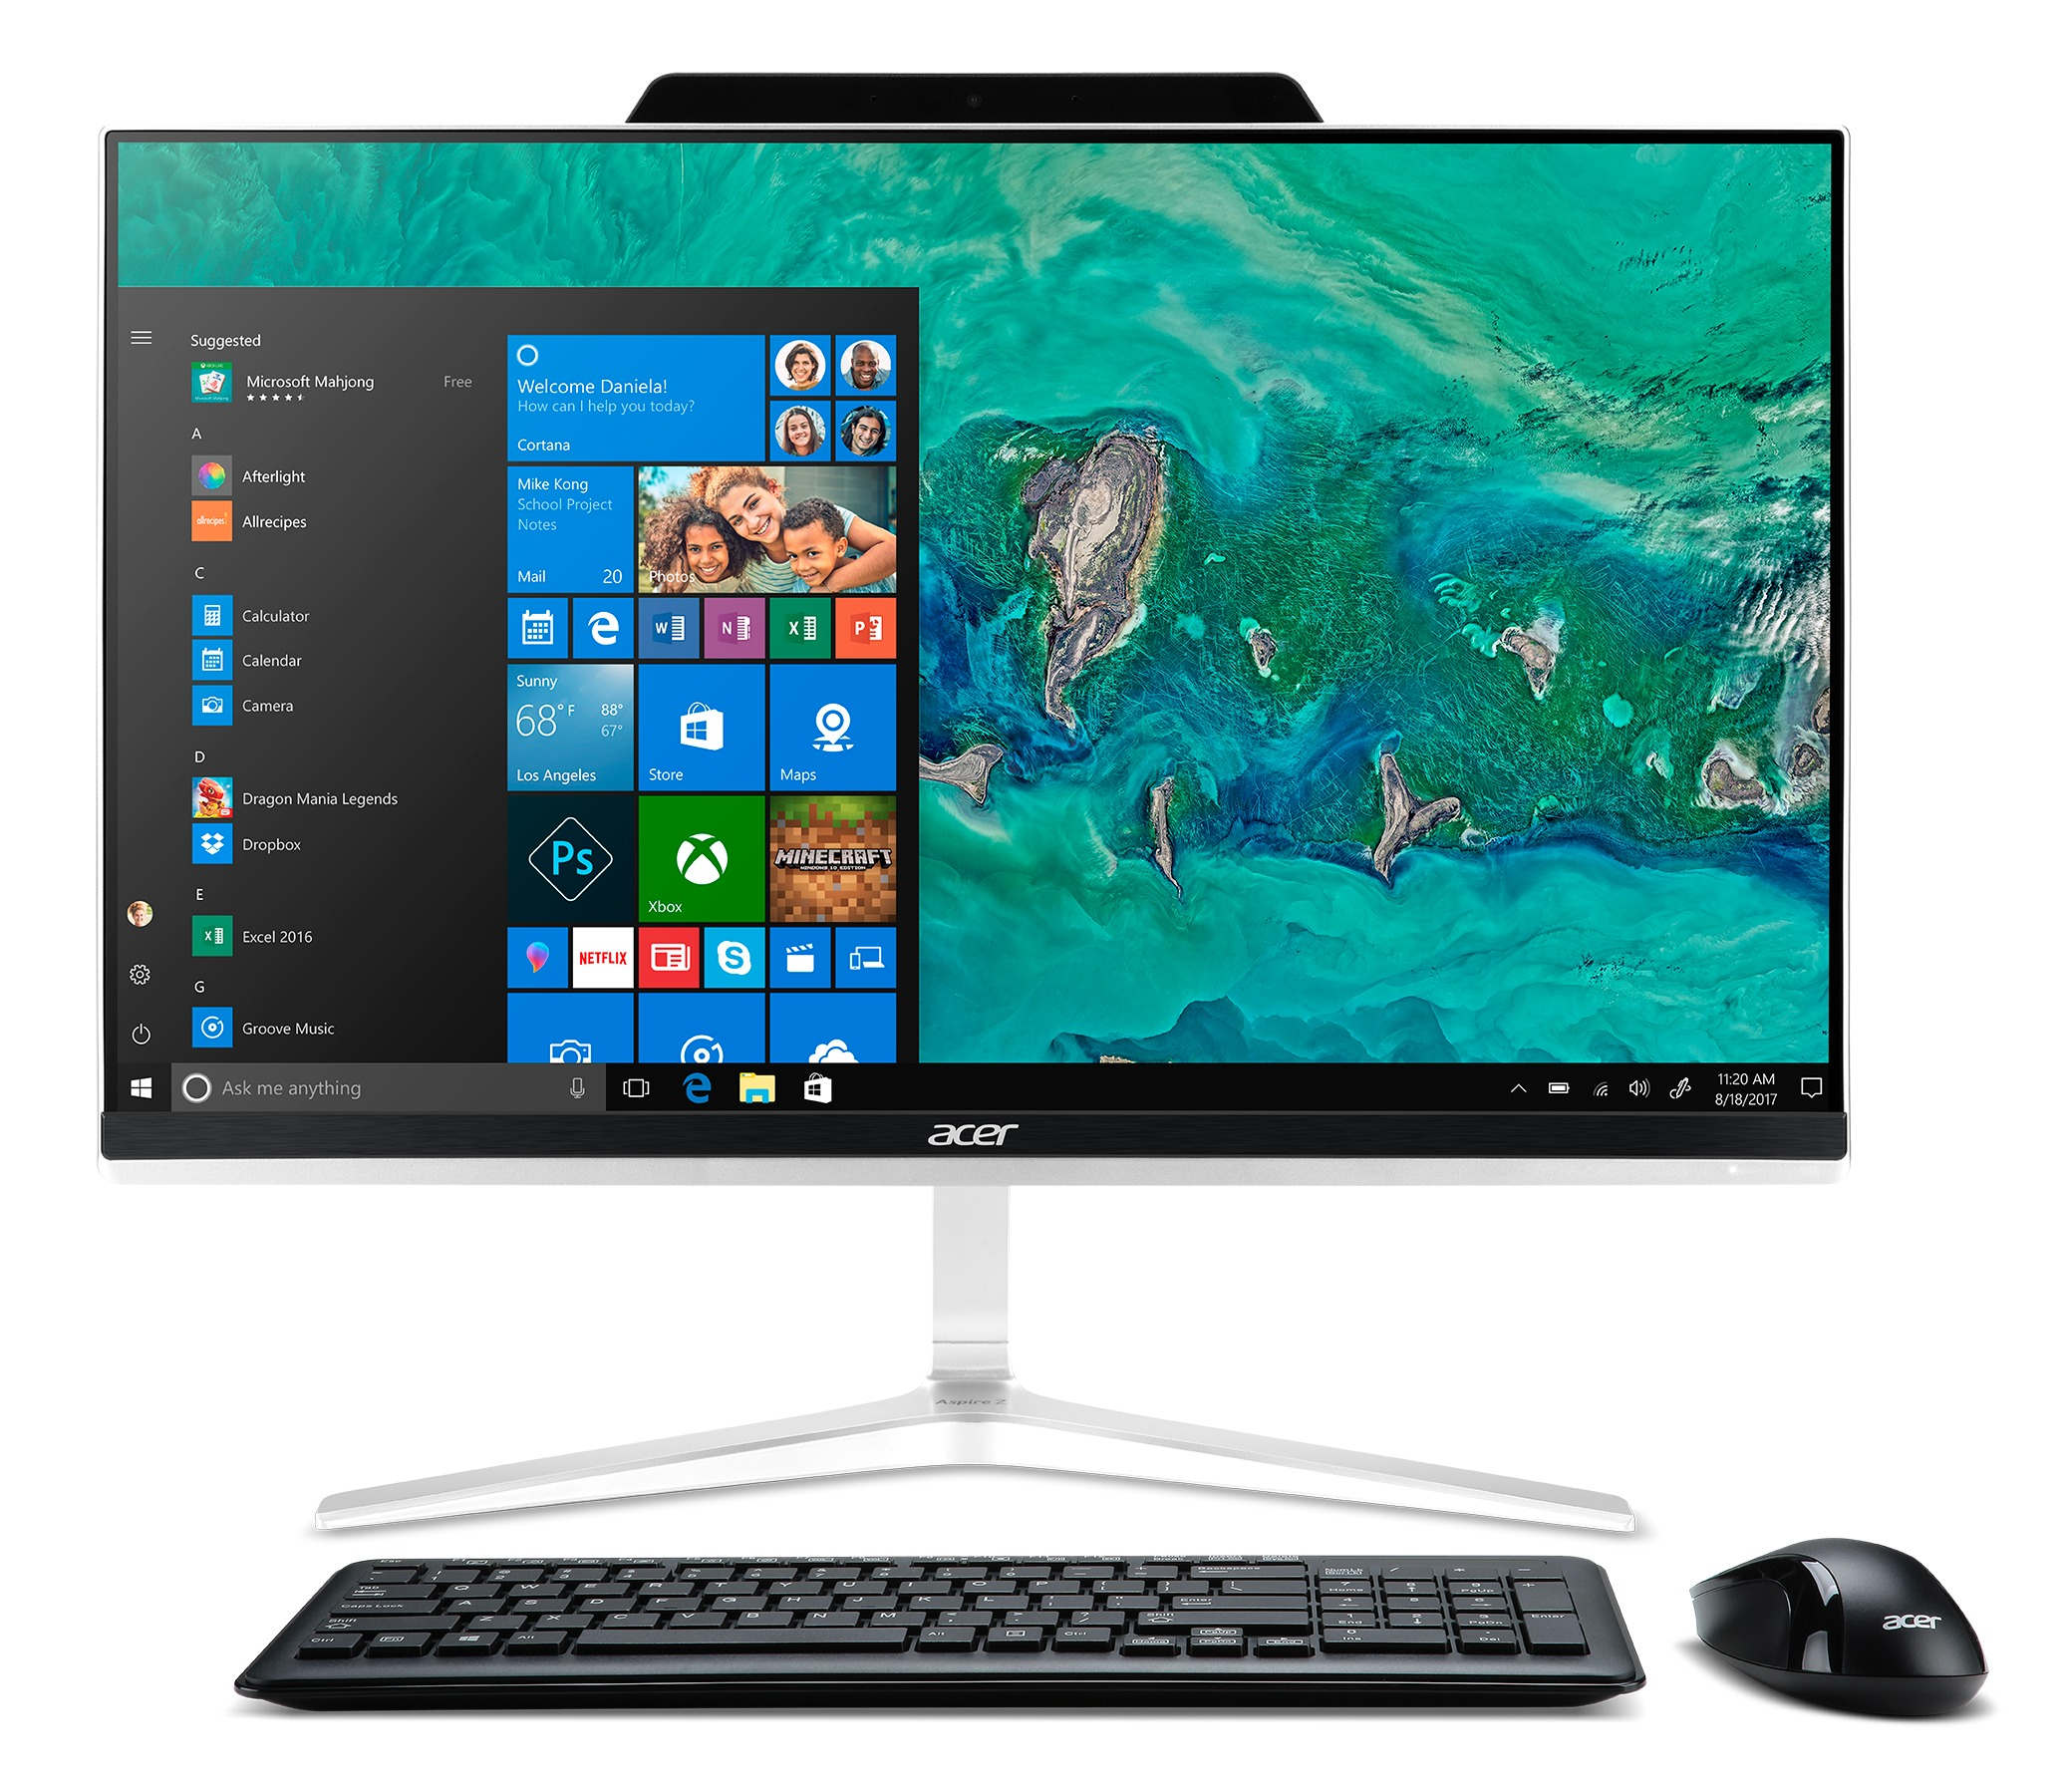 Acer Aspire Z24-890 I7430 NL All-in-one PC